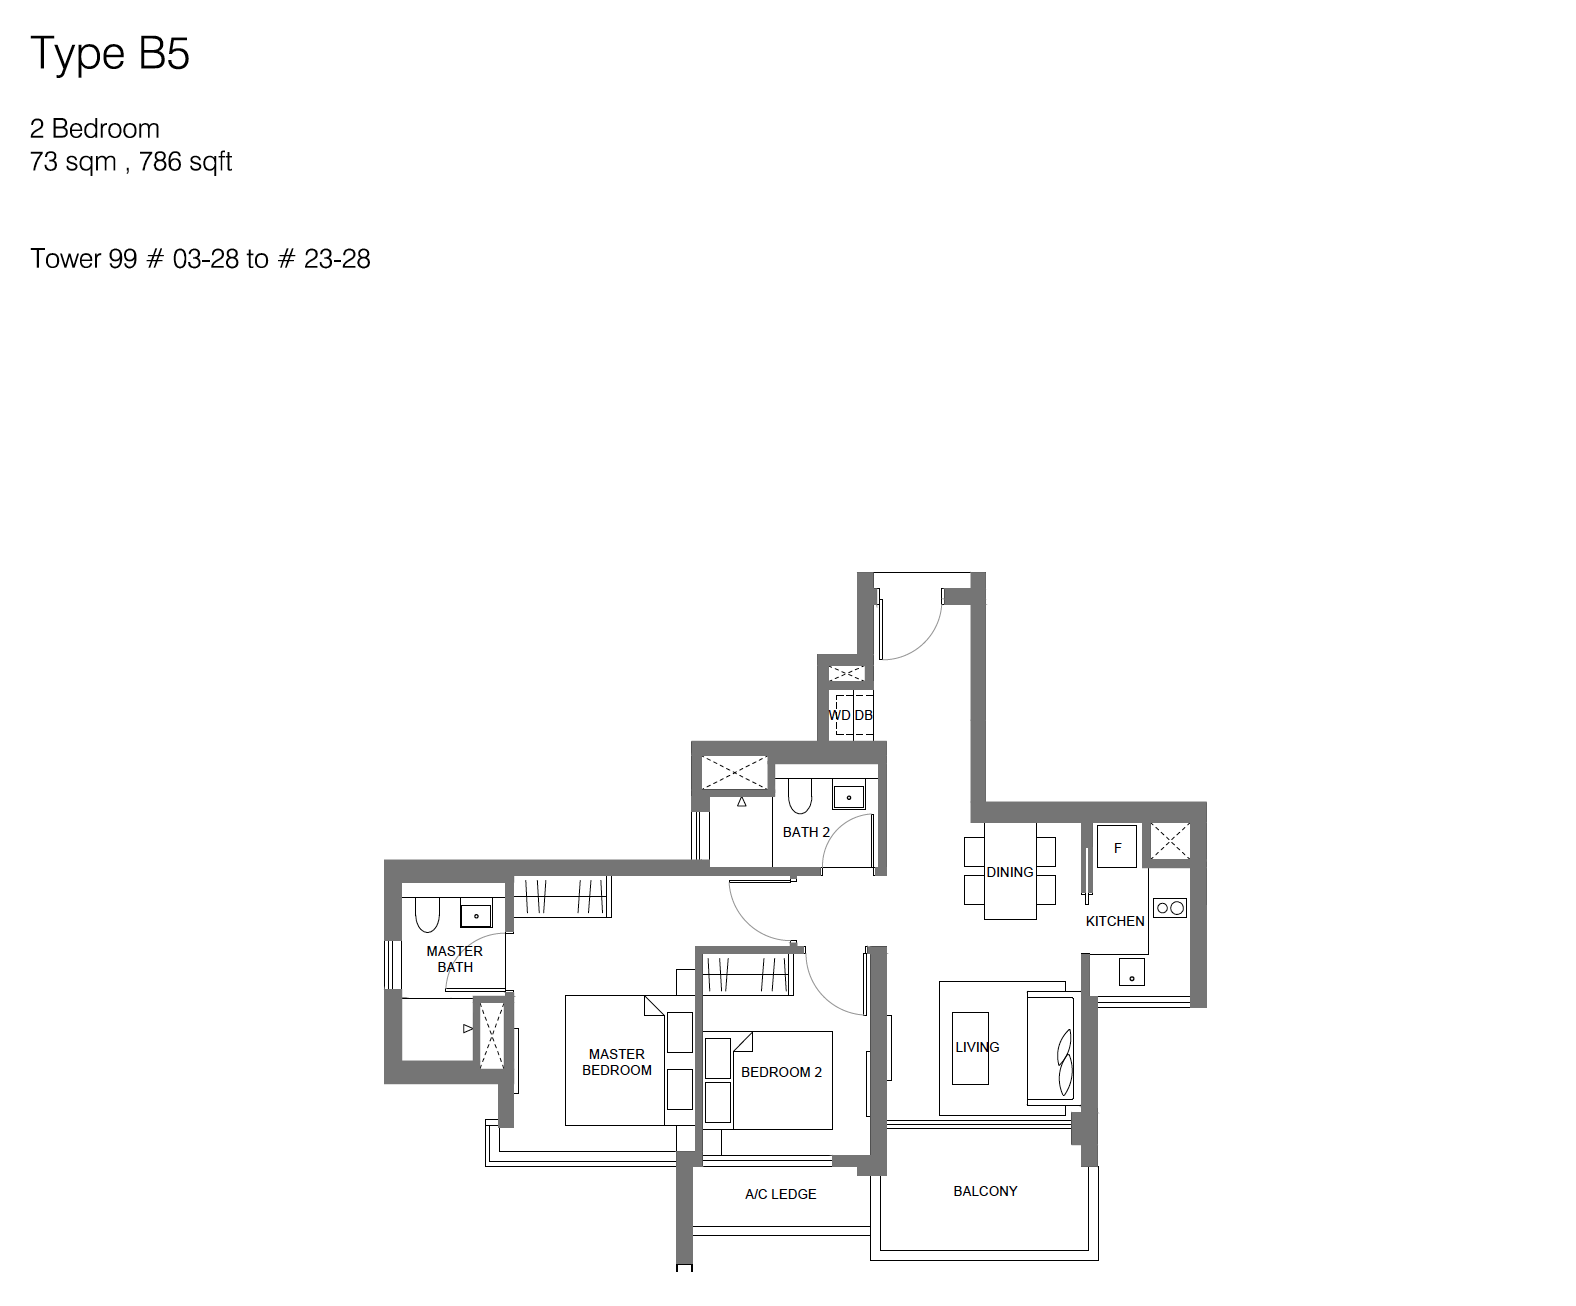 Principal Garden floor plan - 2 bedroom (type B5)